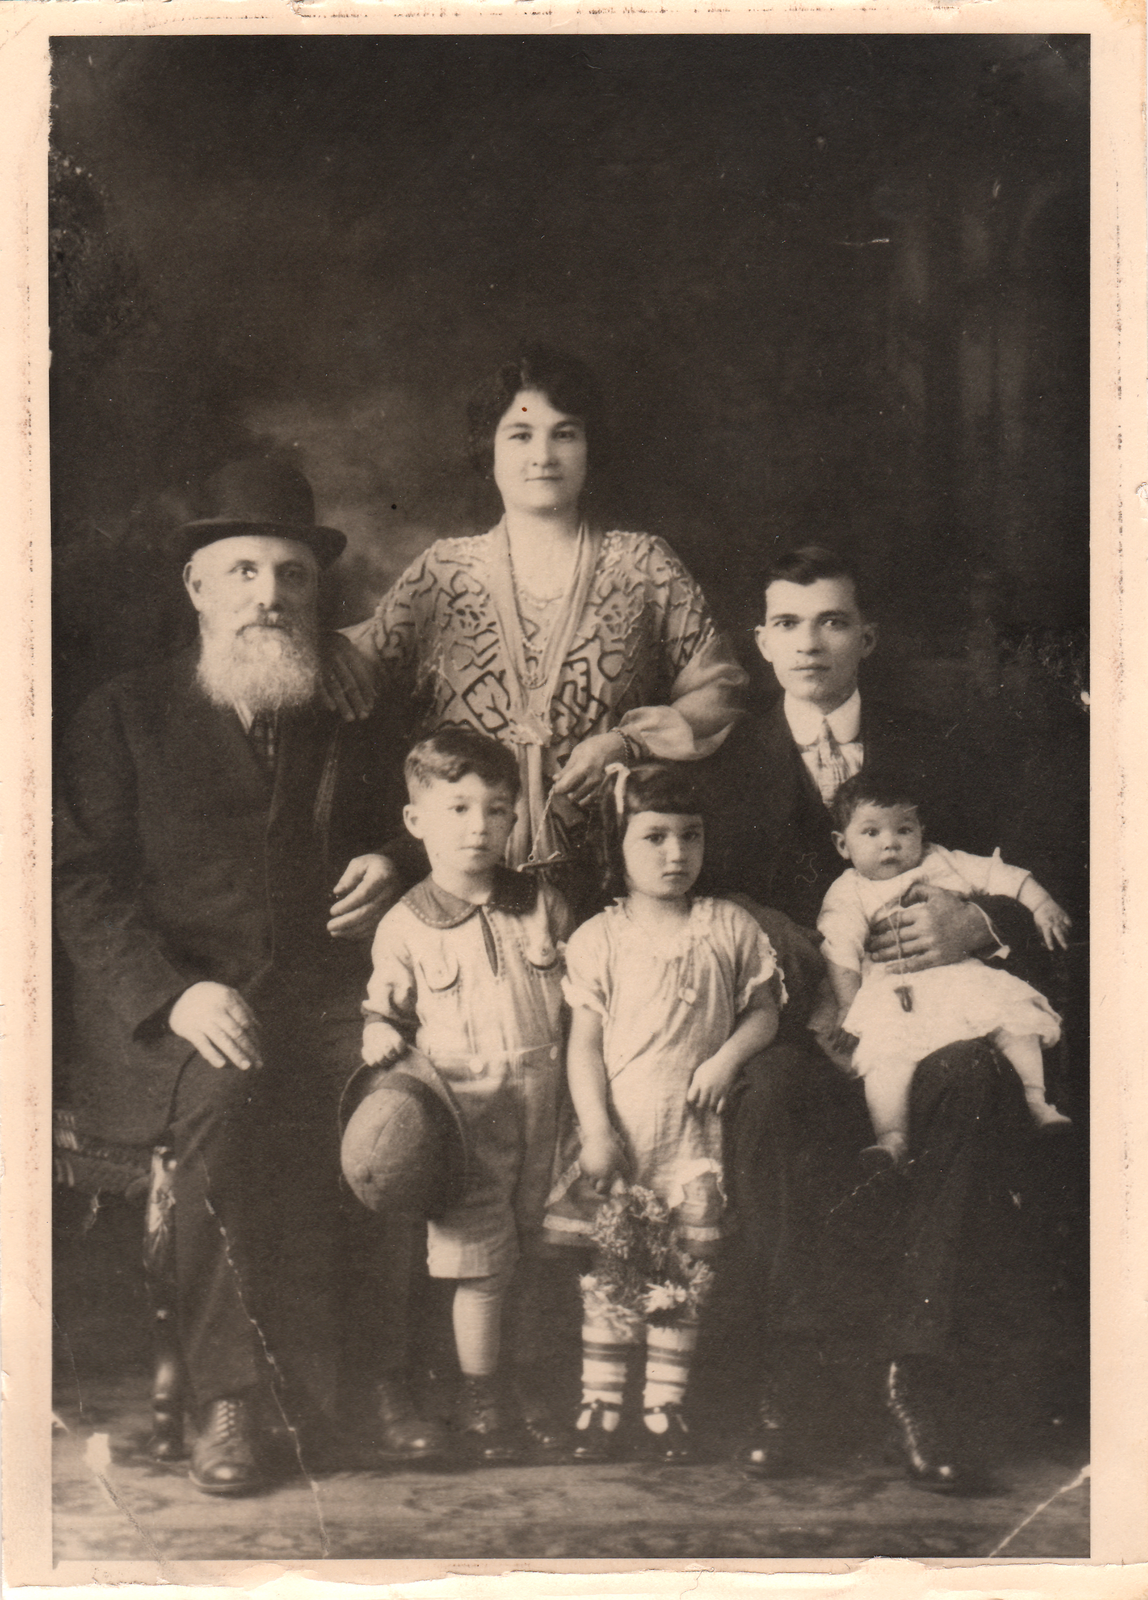 Grandfather Yosef, mother Dona, father Judah, brother Sam, Becky, and sister Nellie.